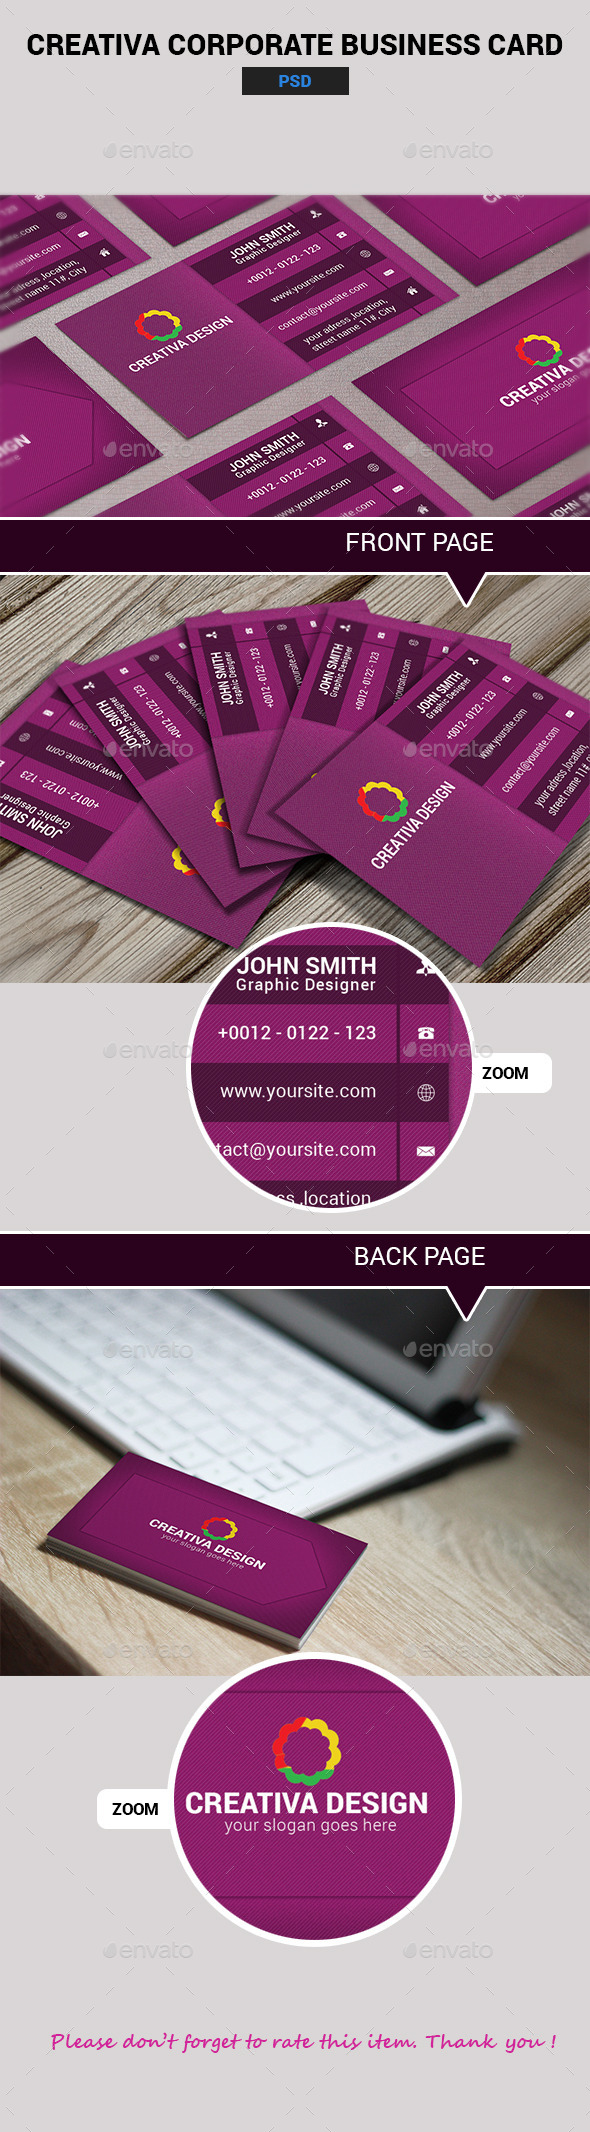 GraphicRiver Creativa Corporate Business Card 11499604